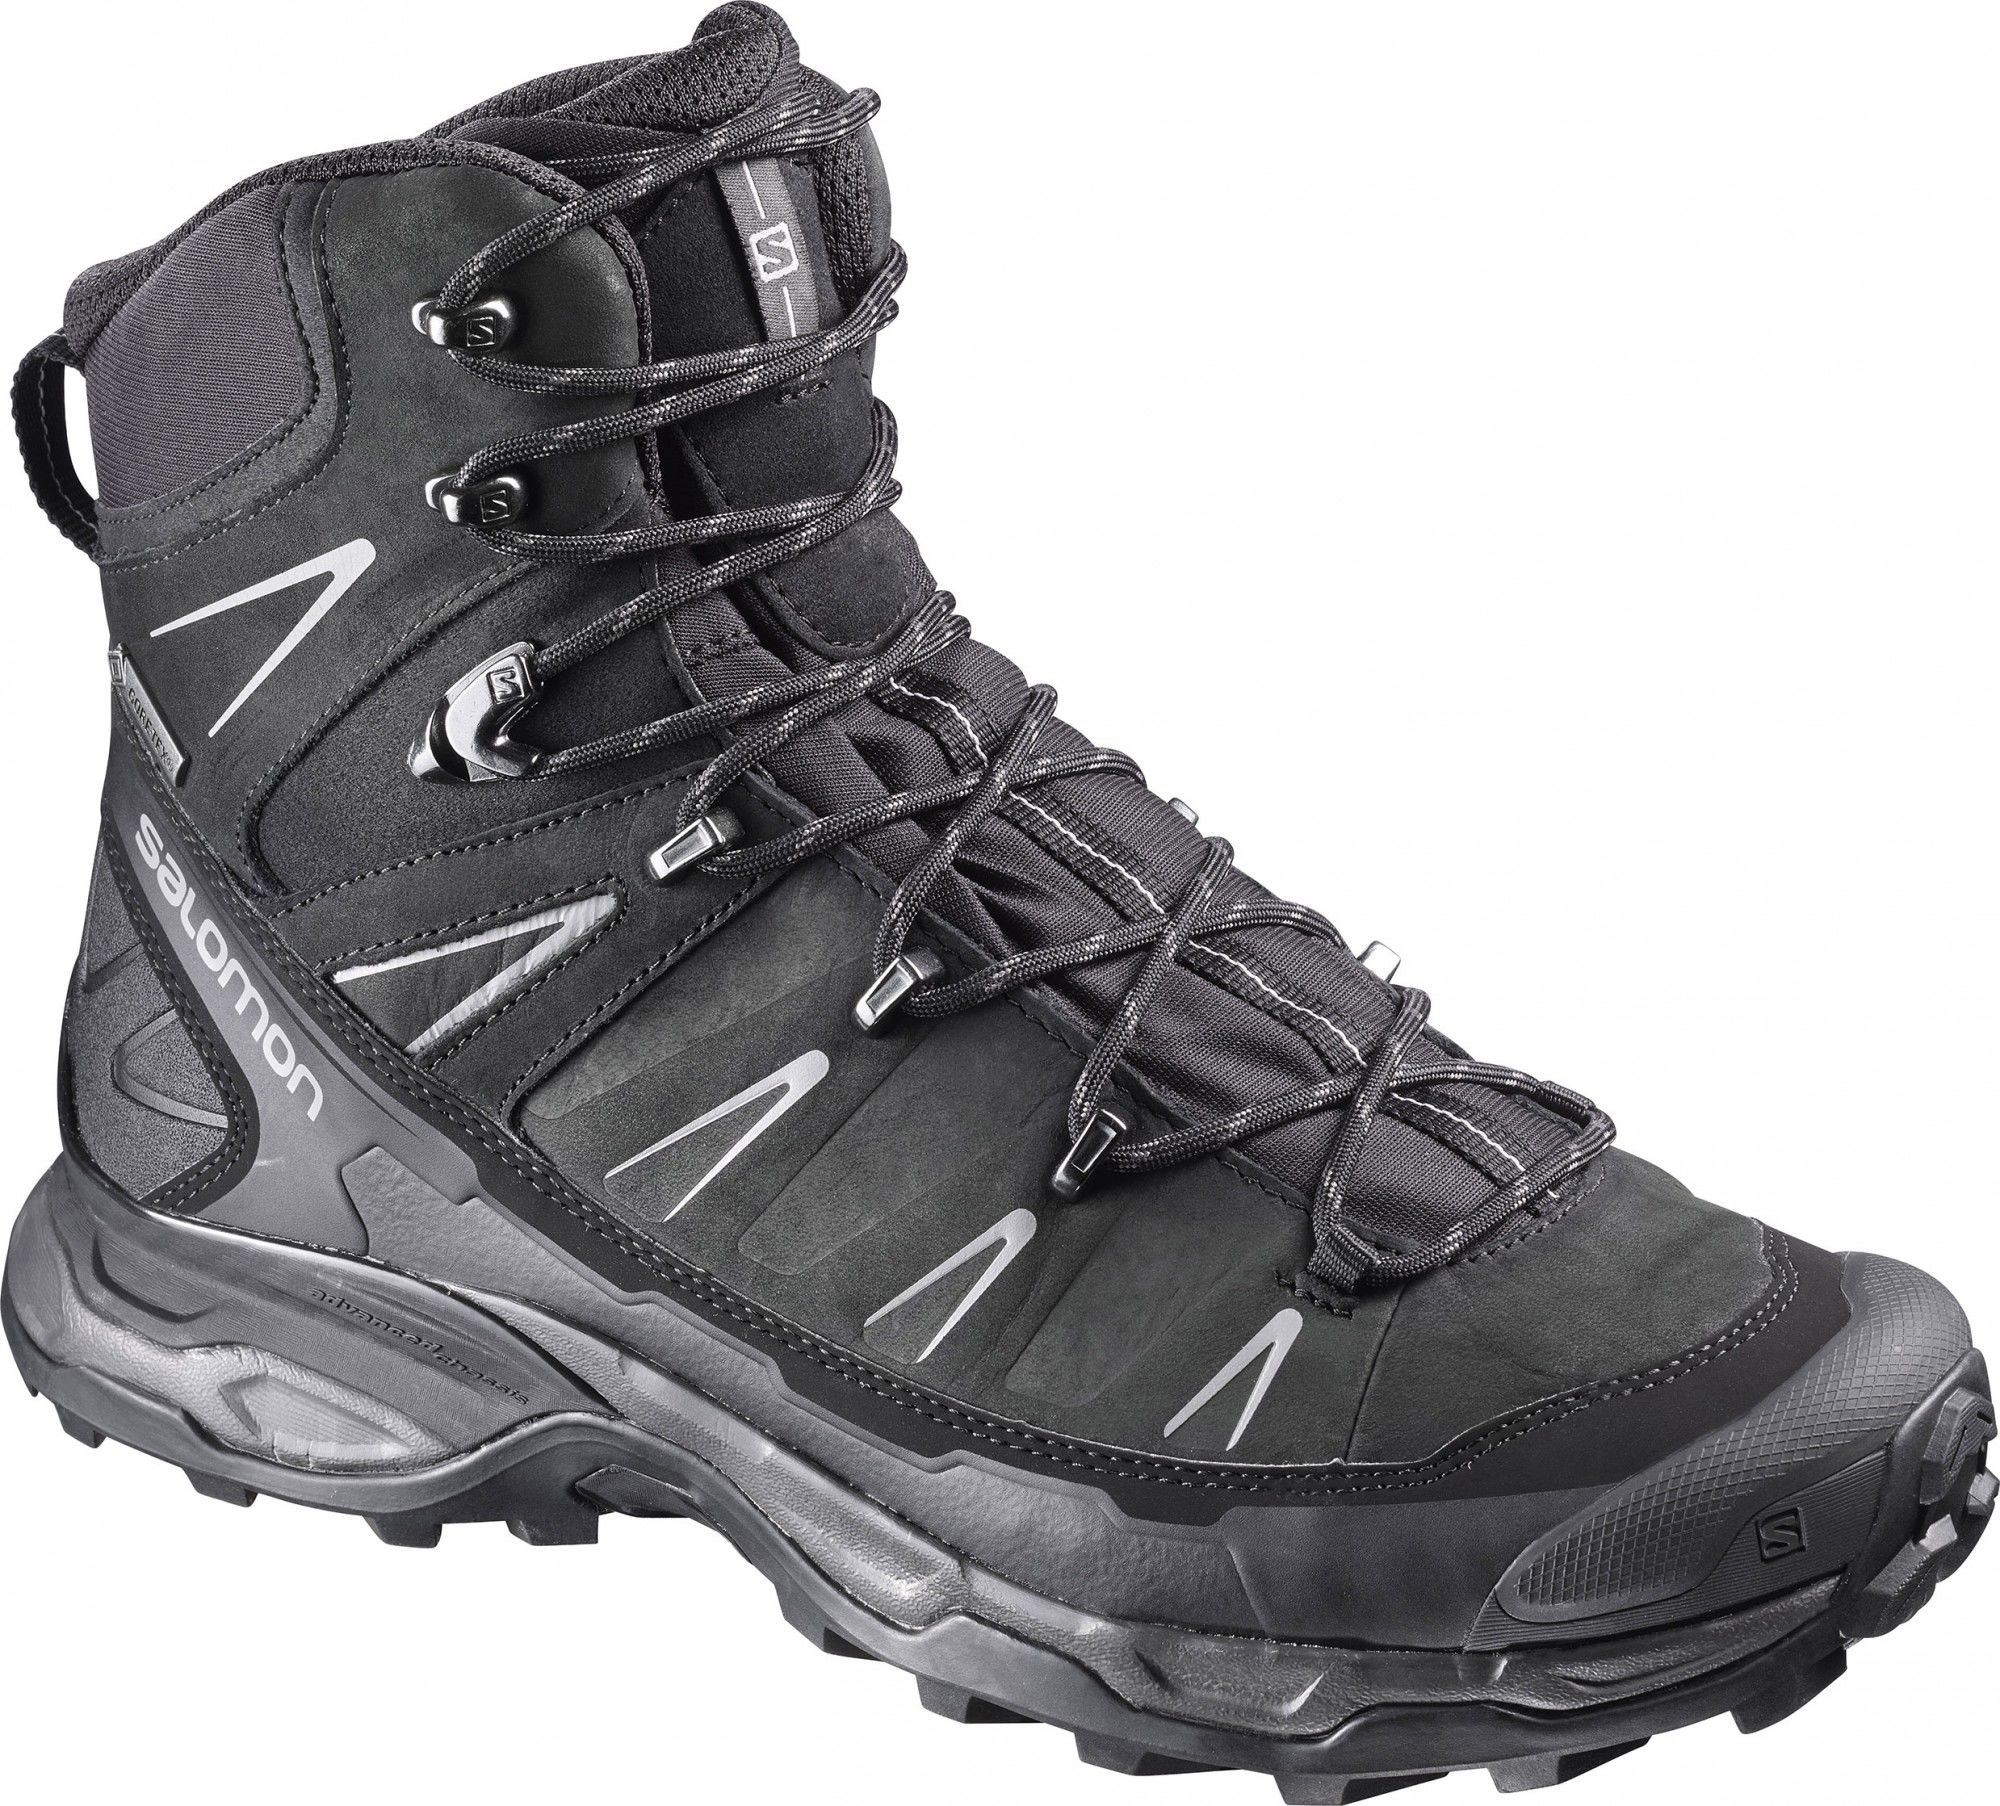 Salomon M X Ultra Trek Gtx® | Größe UK 7.5 / EU 41 1/3 / US 8,UK 6.5 / EU 40